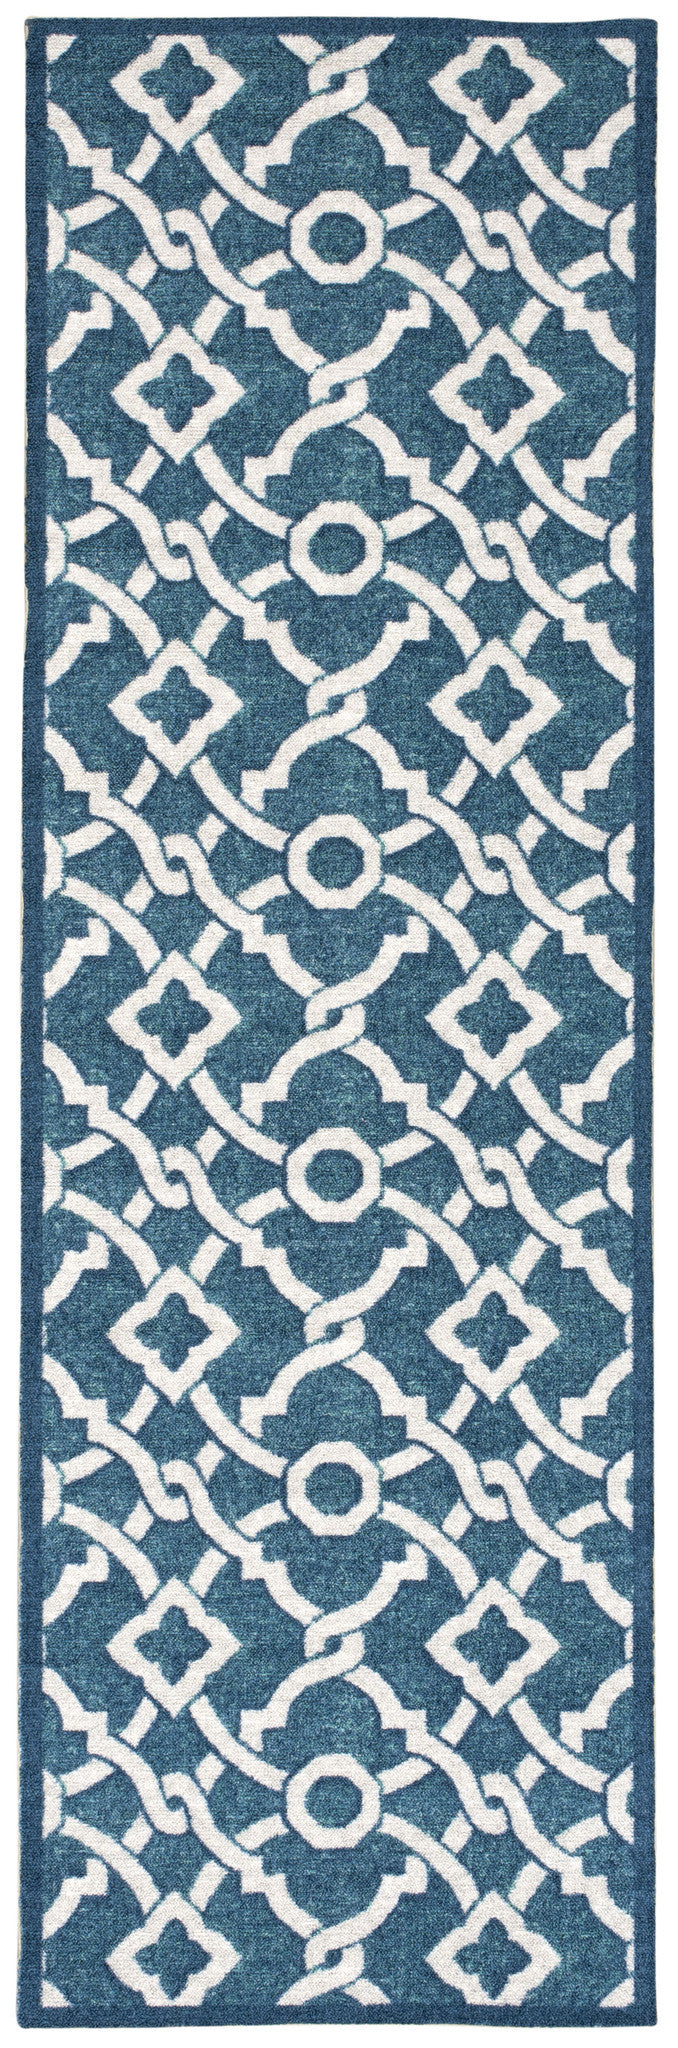 Waverly Treasures Artistic Twist Blue Jay Area Rug By Nourison WTR01 BLJAY